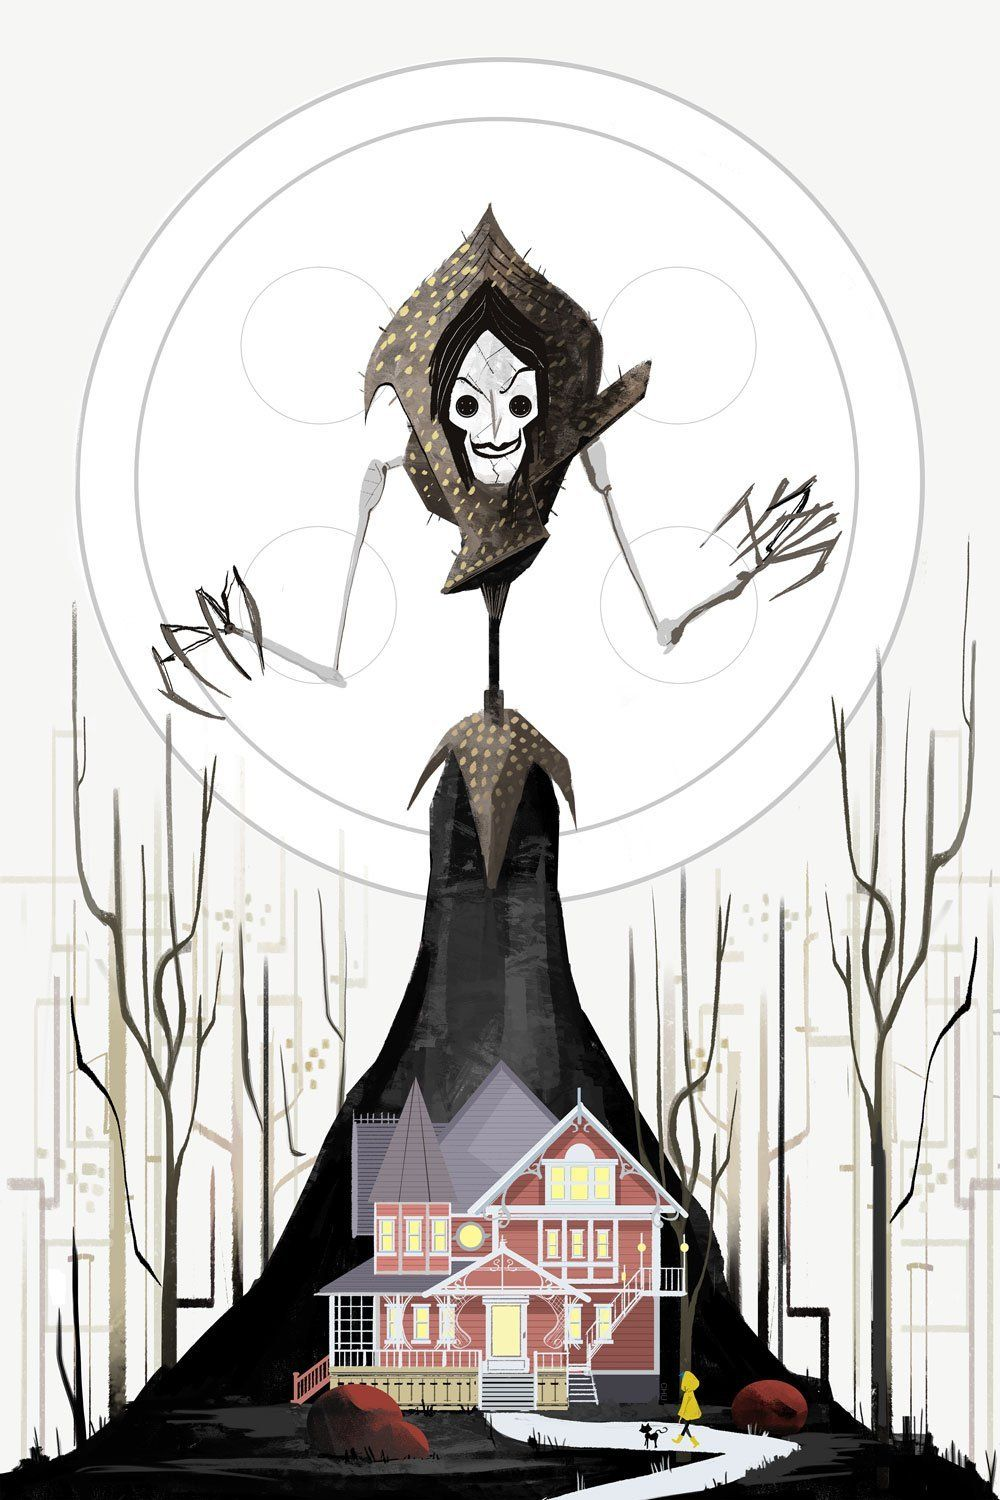 Beldam By Janice Chu Tumblr Part Of The Laika 10 Yr Anniversary Exhibition Halloween Party Art Show At Gallery Nucleus Coraline Art Coraline Coraline Jones